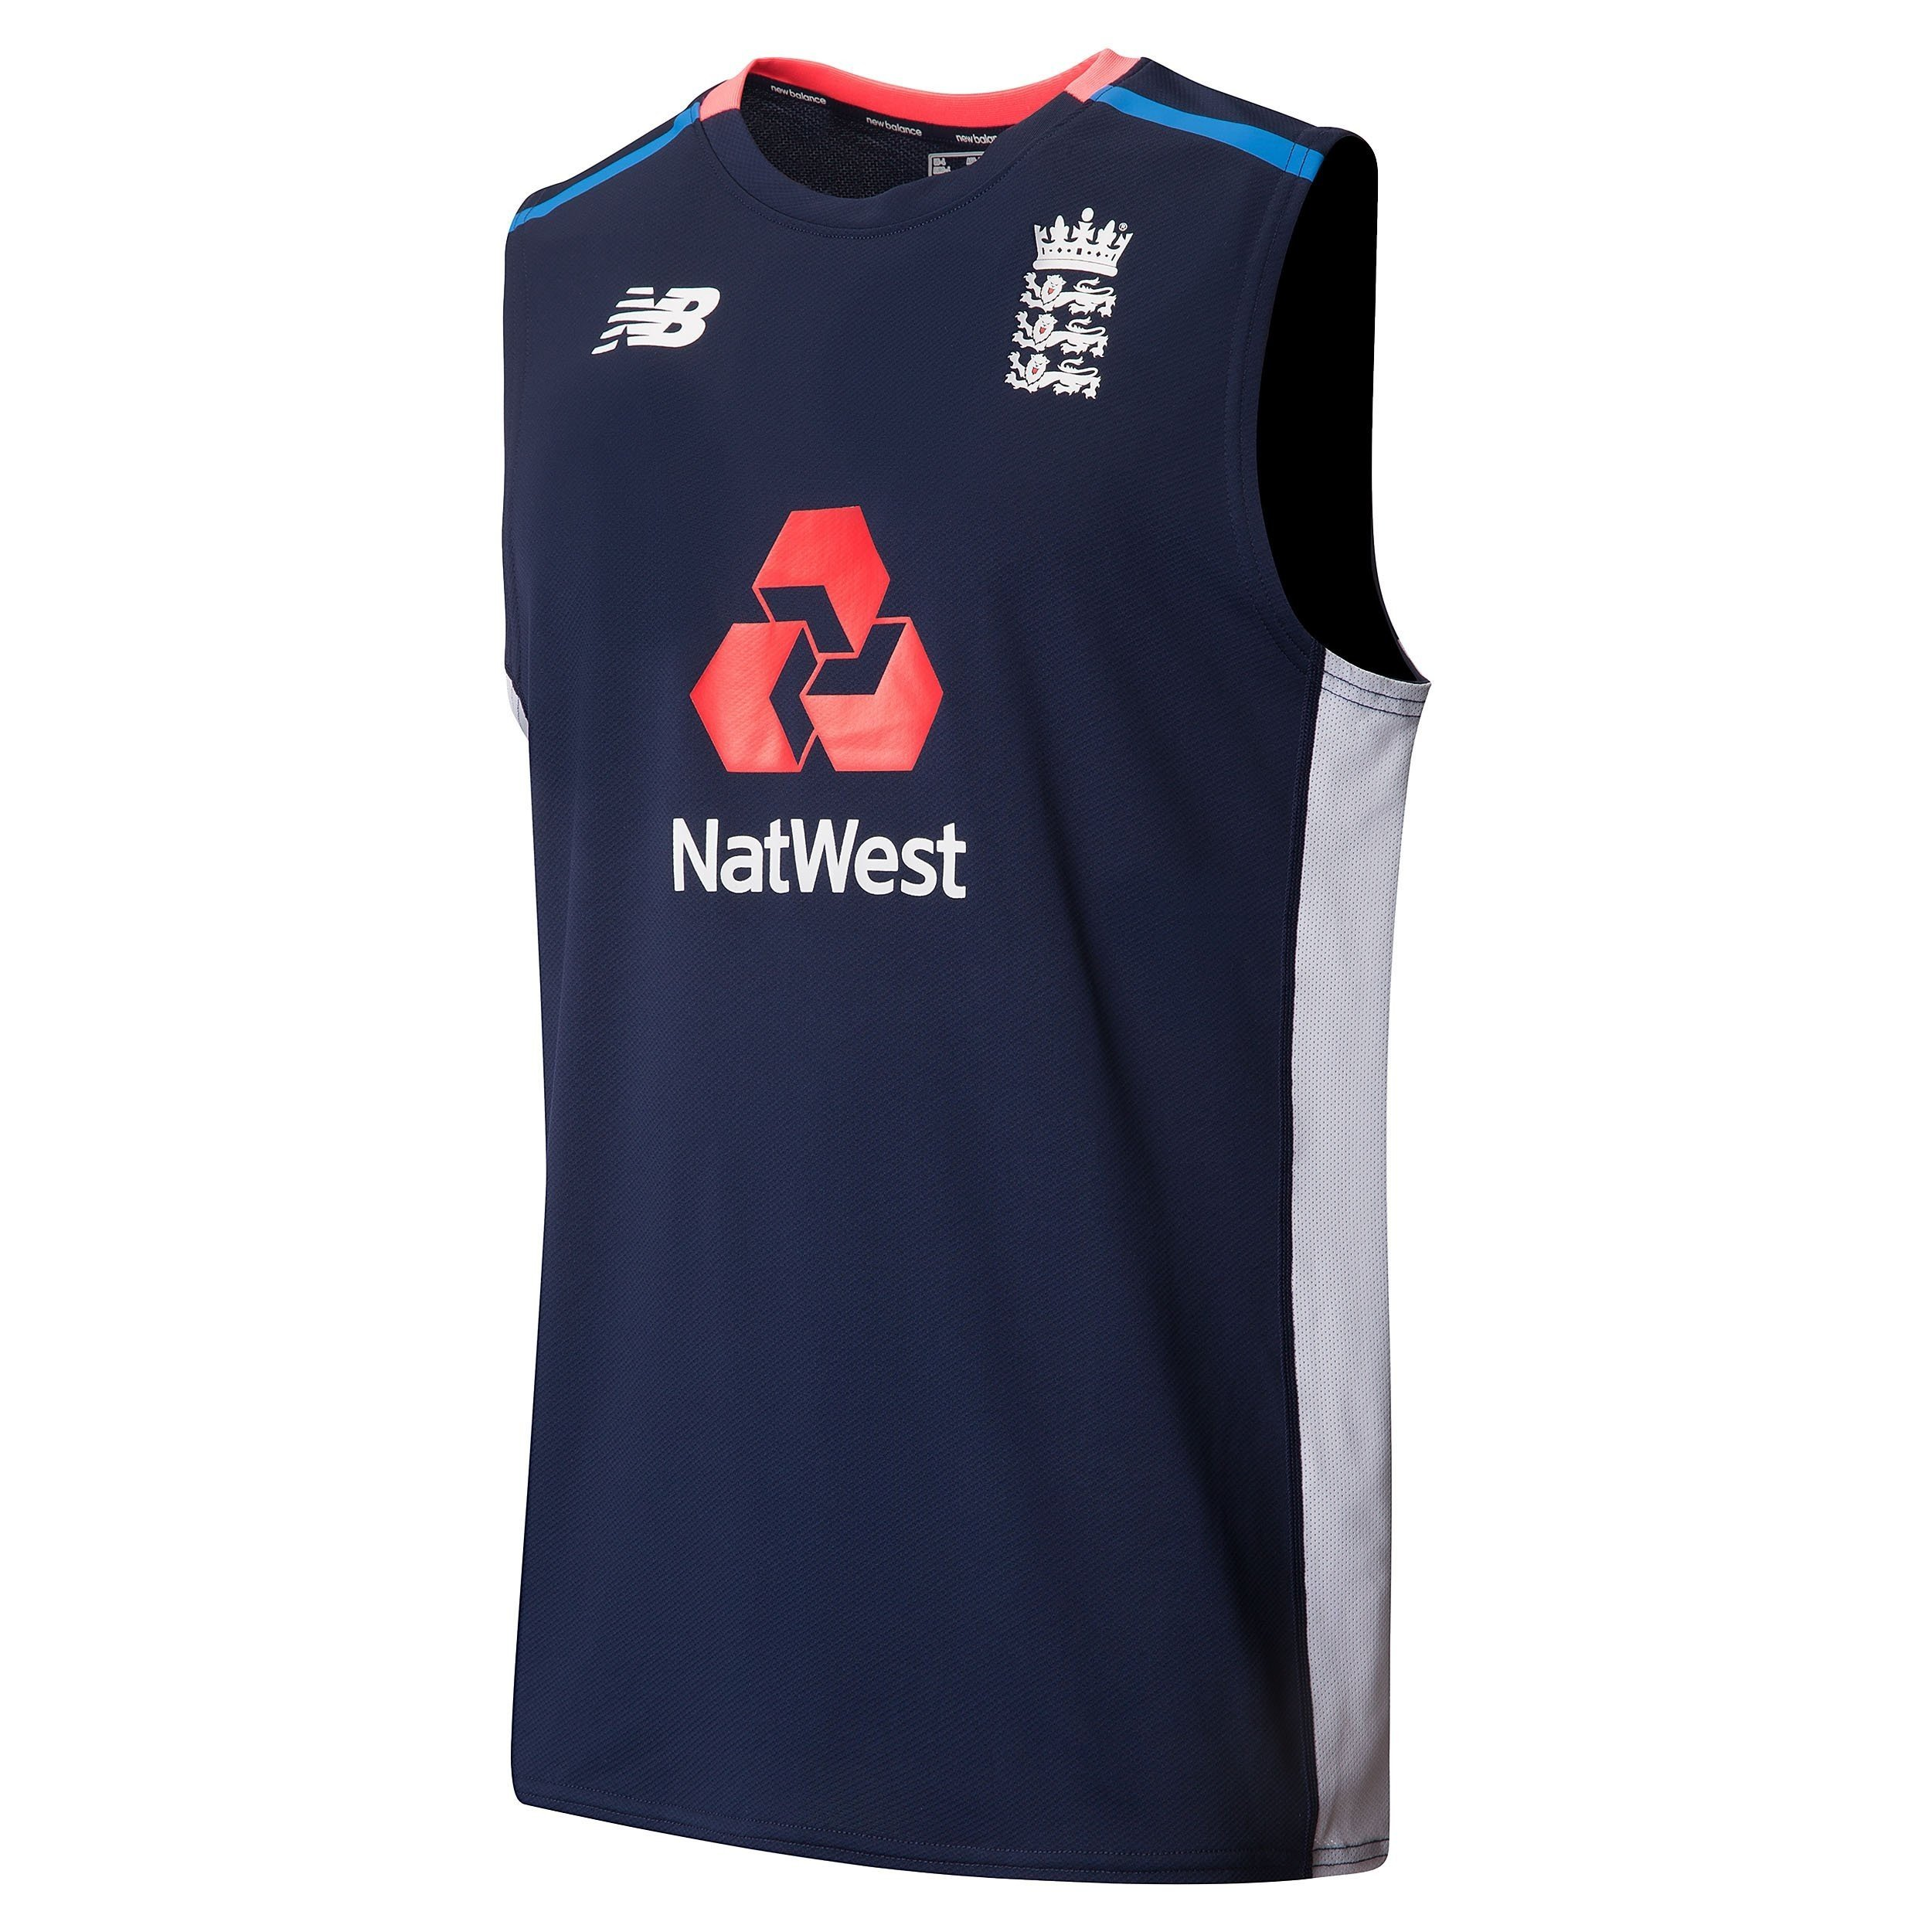 2017 New Balance England Replica Sleeveless Training Shirt